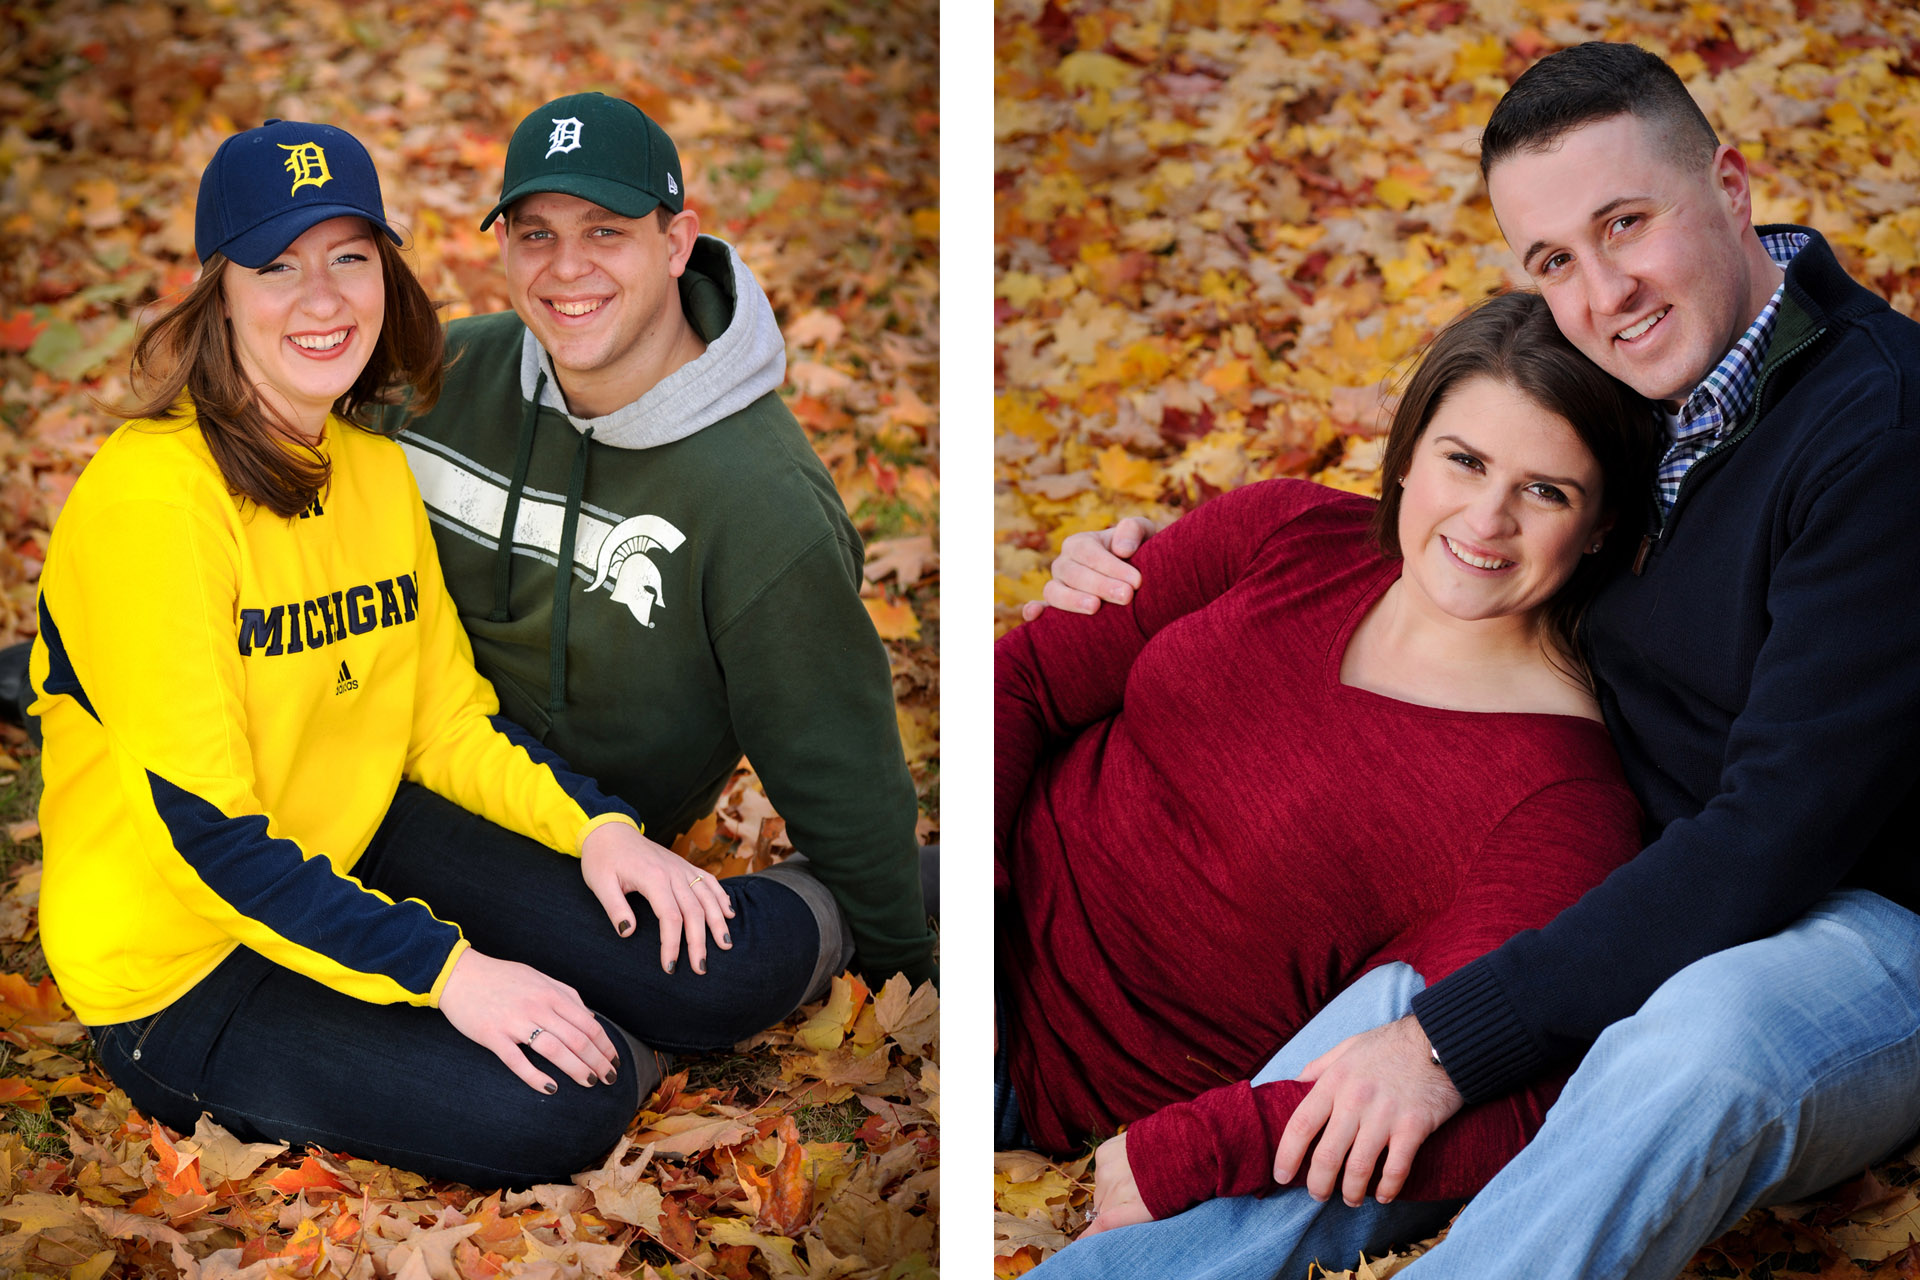 Best Detroit engagement photographer takes fun, candid engagement portraits like this engagement couple of a Michigan State and a University of Michigan couple in the fall.